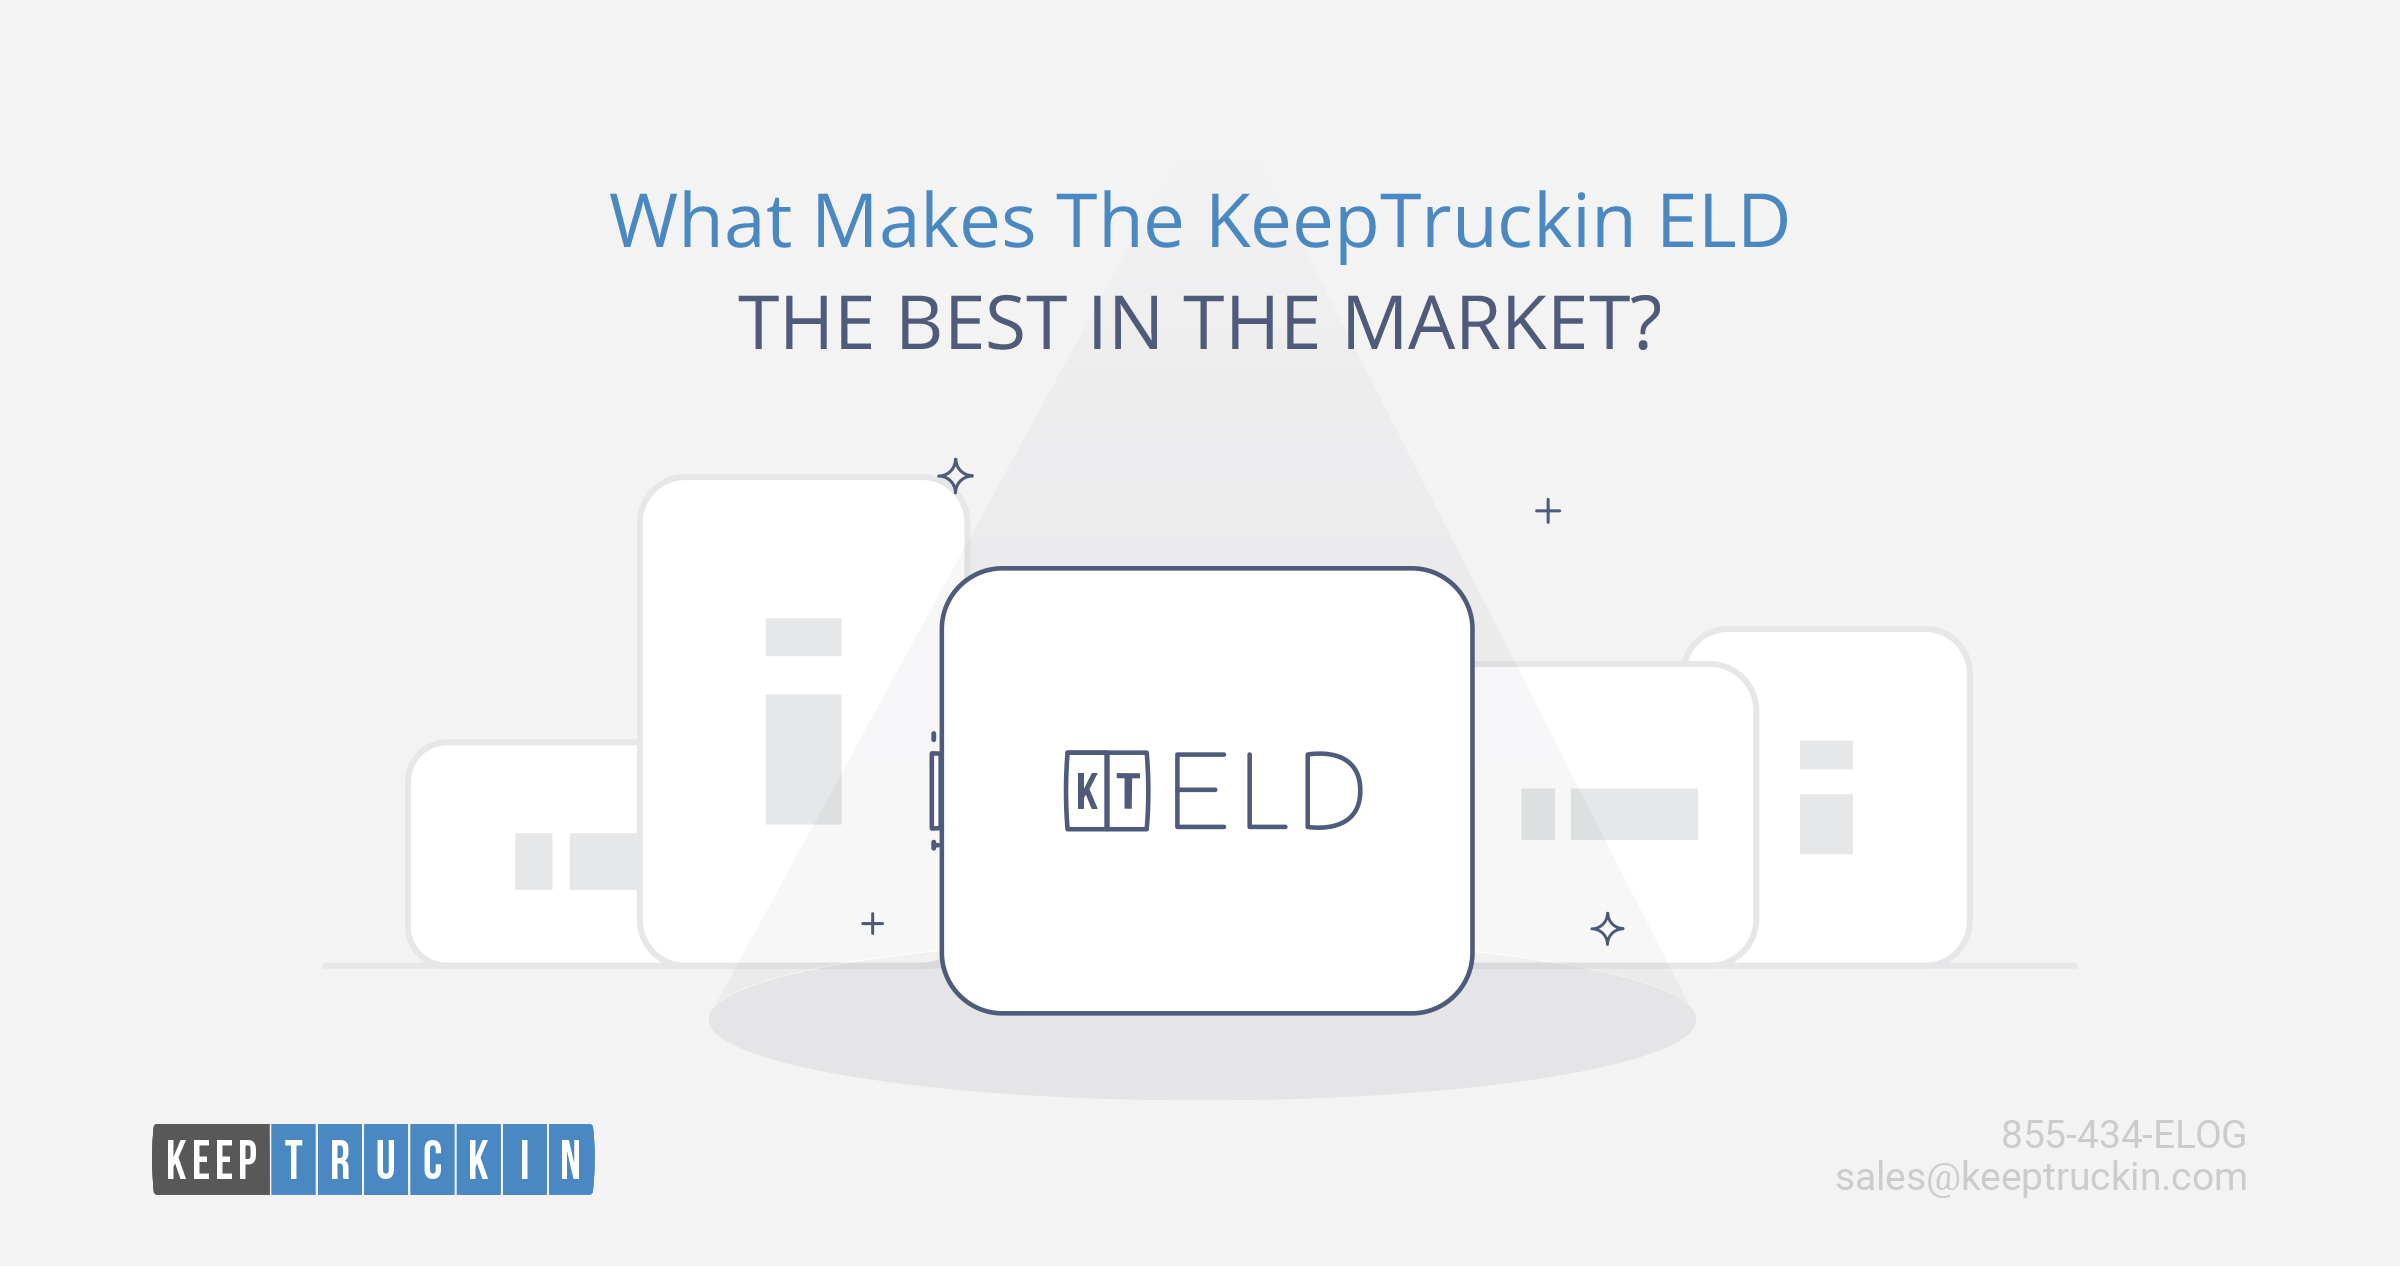 What makes KeepTruckin ELD the best in the market?